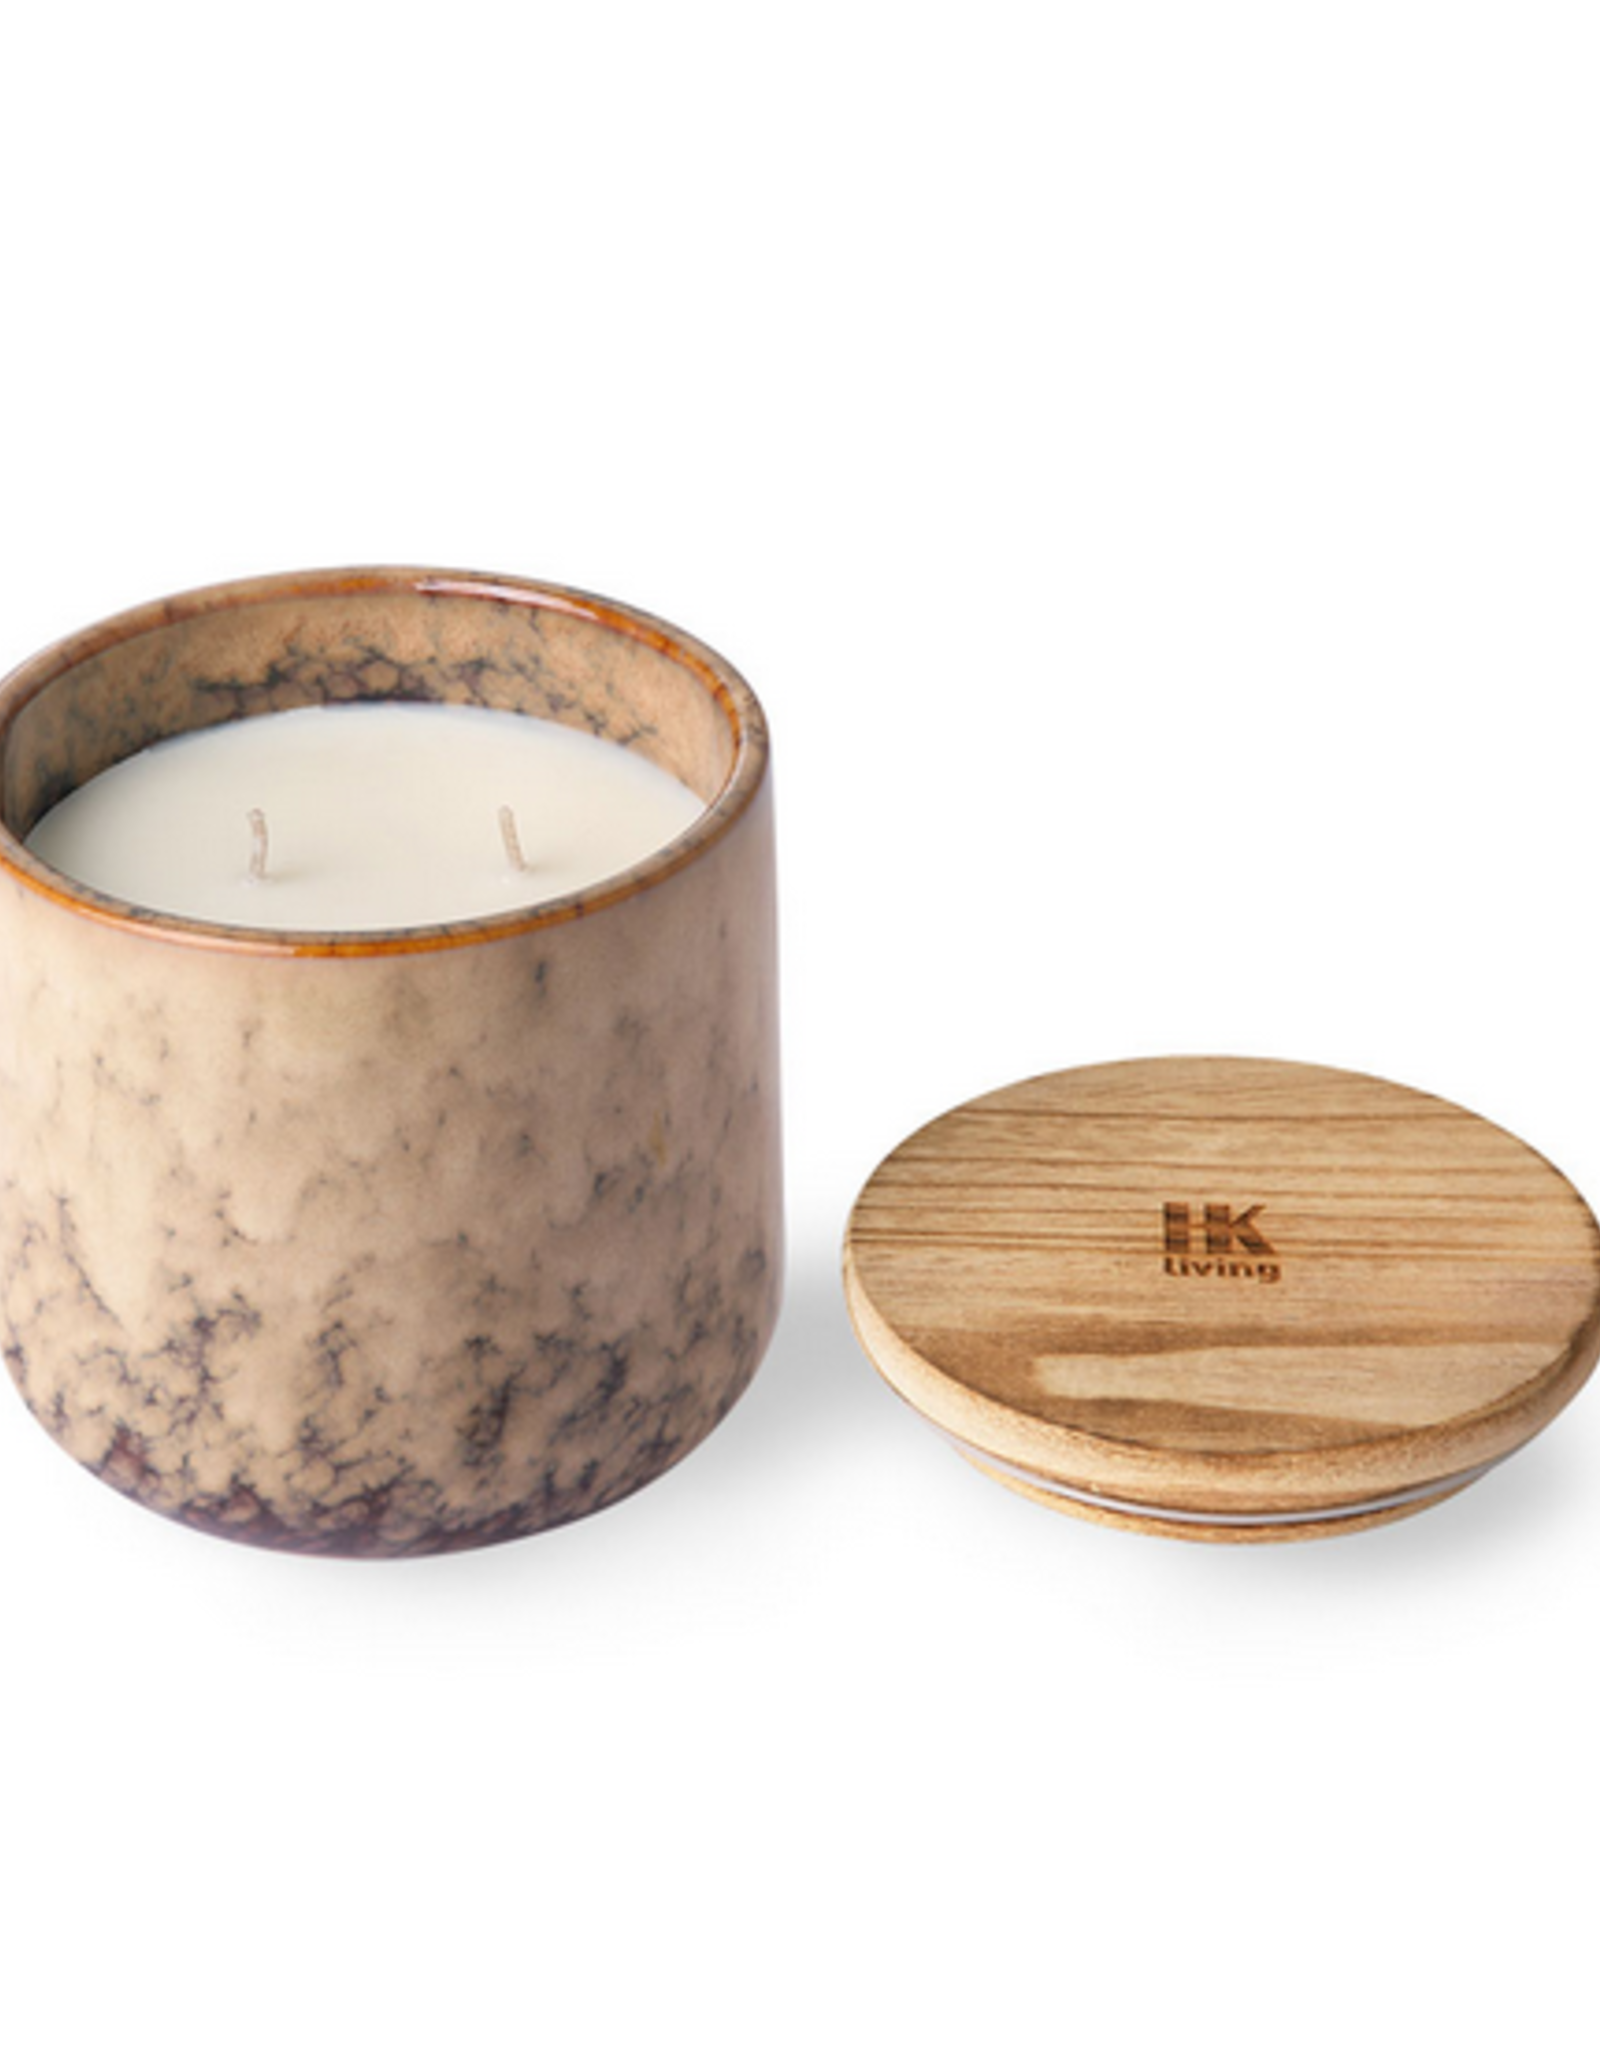 HK Living Ceramic scented candle casa fruits